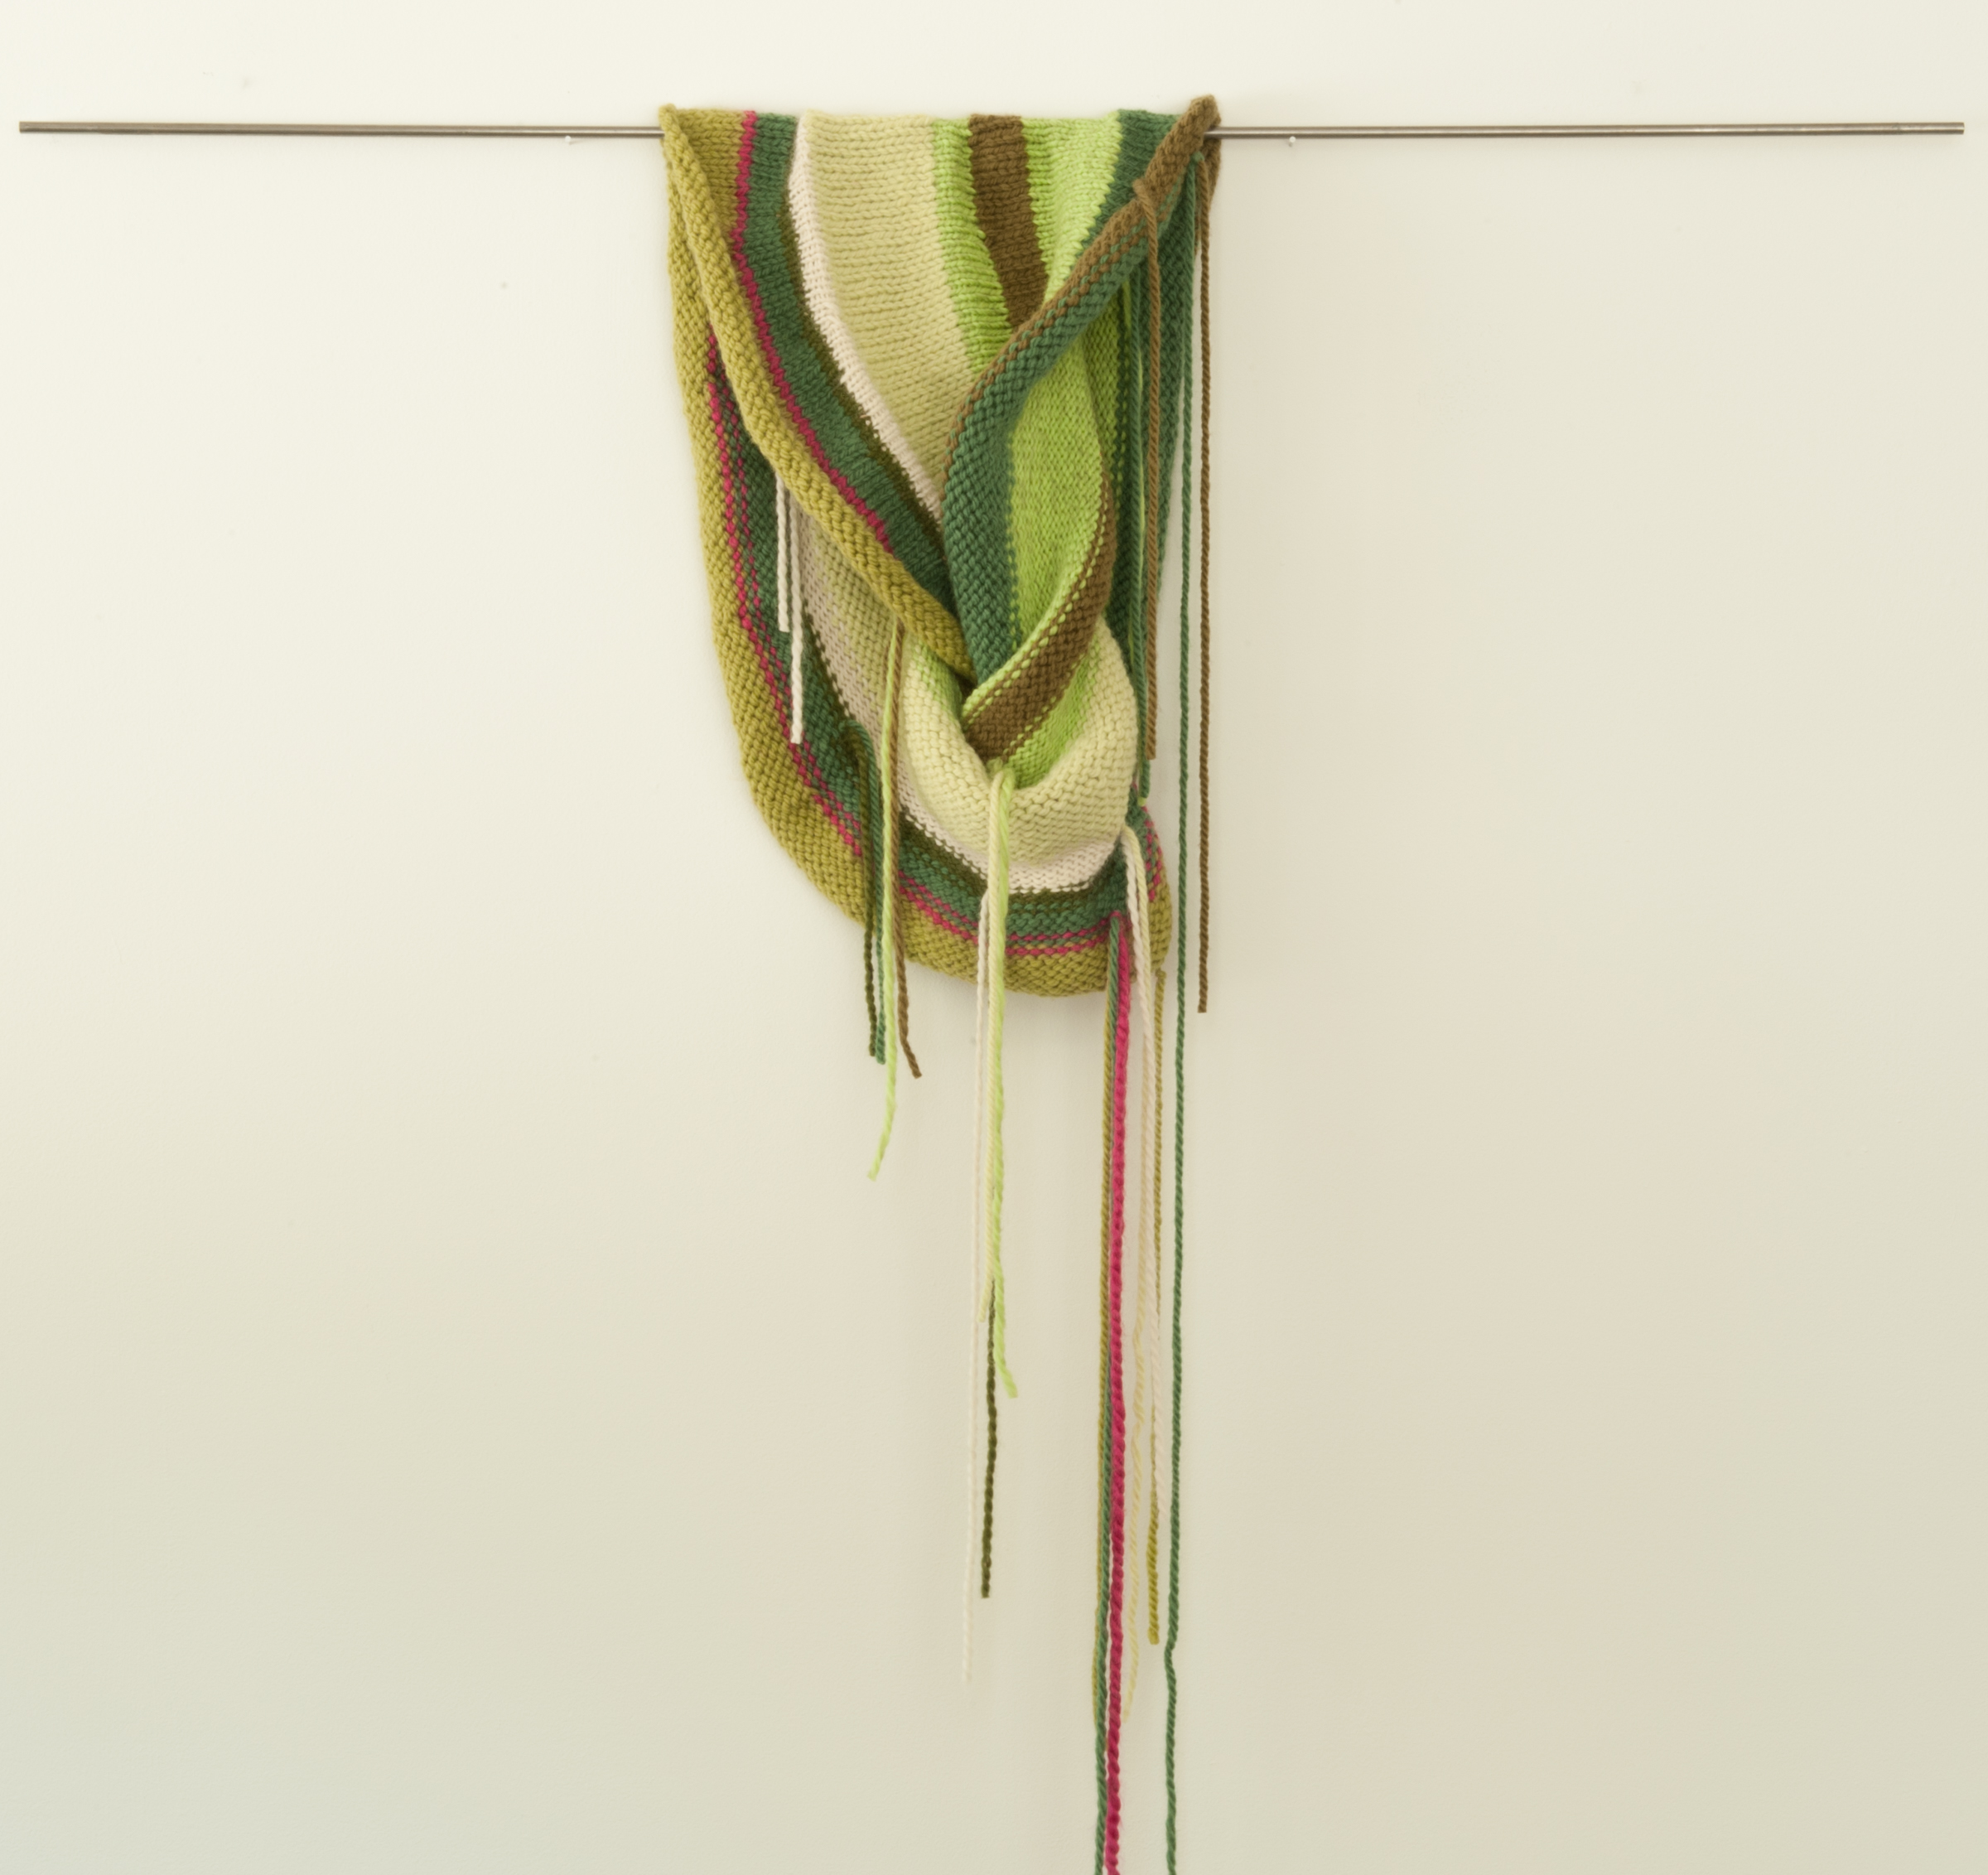 Edna Garrett  | 2013  | hand knitted acrylic, cotton, and wool | 54 x 18